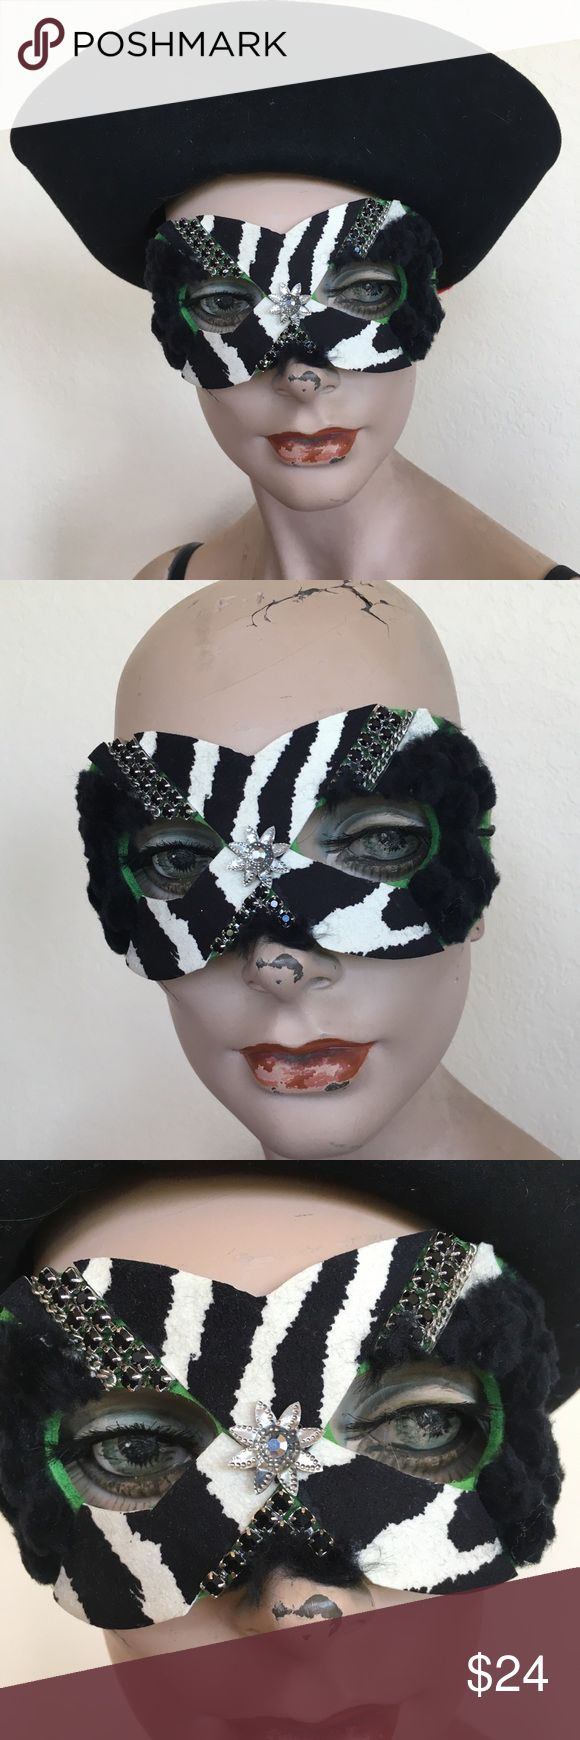 Theatrical wear 4 life offstage MASK, who are you? Cool handmade. Chicken and turkey feathers , Swarovski crystals, chain, bugs, kid leather, glass pearls, jewelry findings, handmade, one of a kind, Signed! Accessories